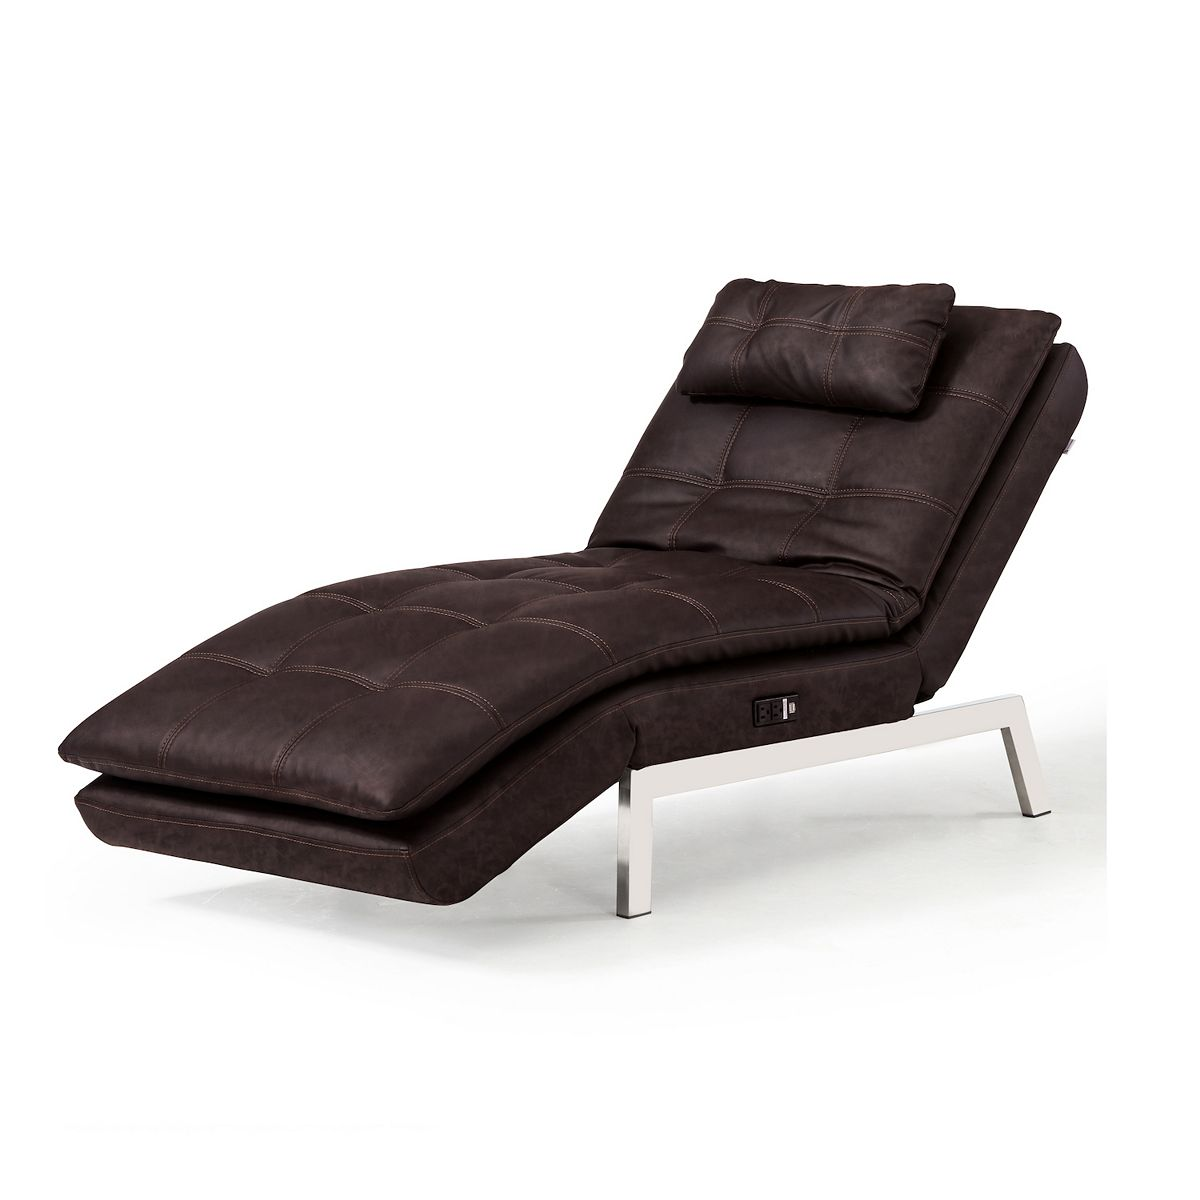 Relax A Lounger Arnold Convertible Chaise Lounge / Sleeper w/ USB (Brown w/ Tan stitching)